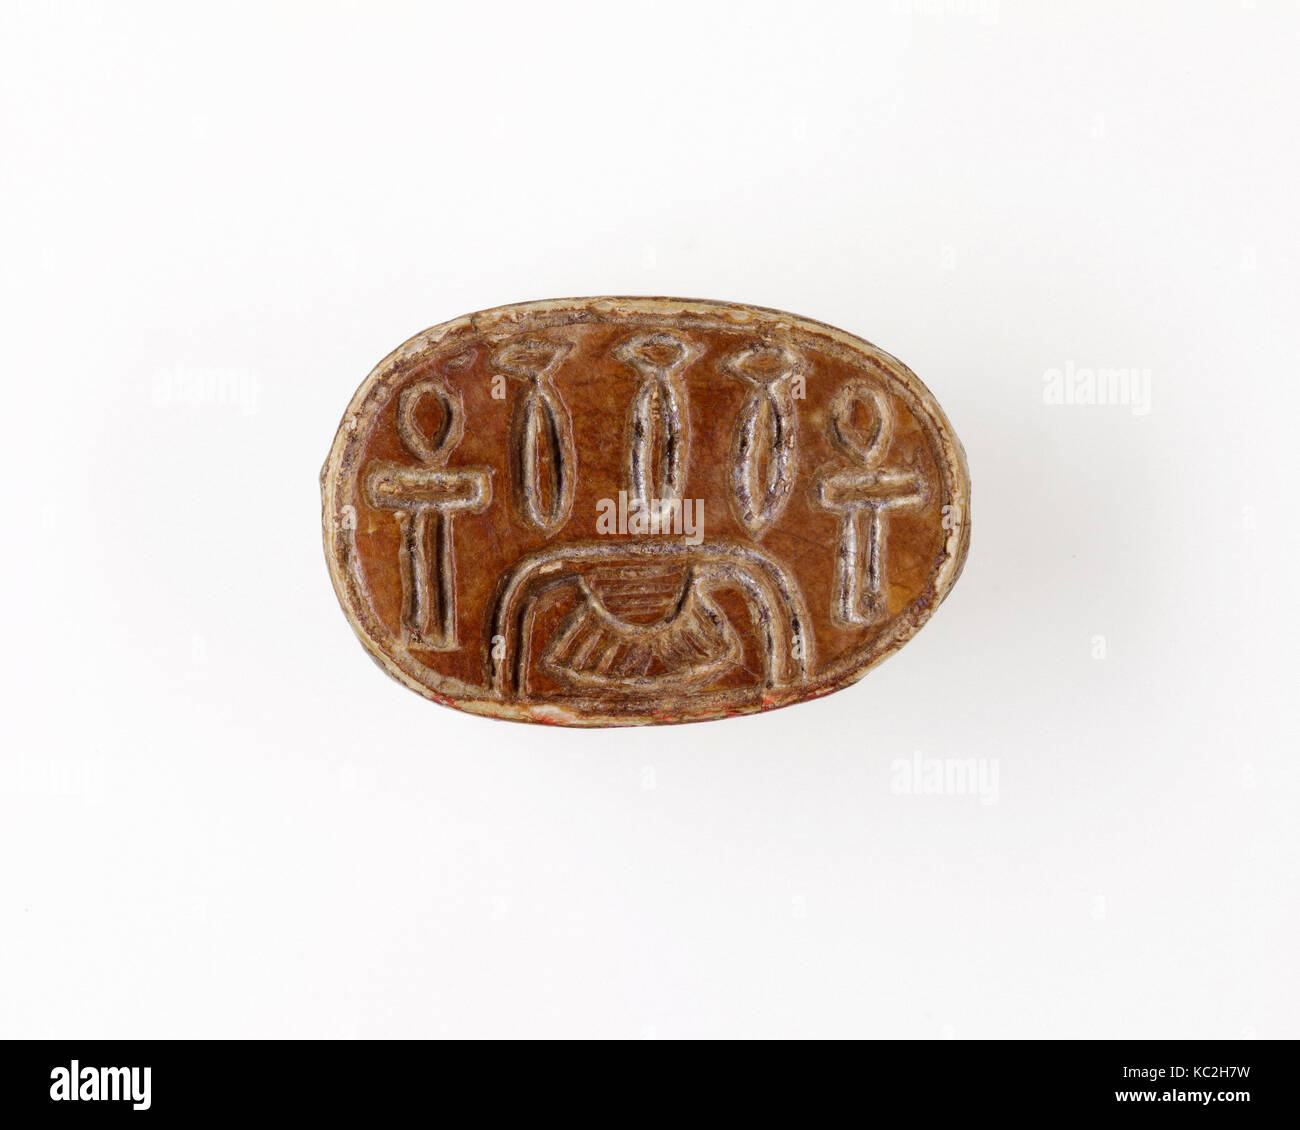 Scarab middle kingdomearly new kingdom dynasty 1218 ca stock scarab middle kingdomearly new kingdom dynasty 1218 ca 19811295 bc from egypt memphite region lisht north cemetery biocorpaavc